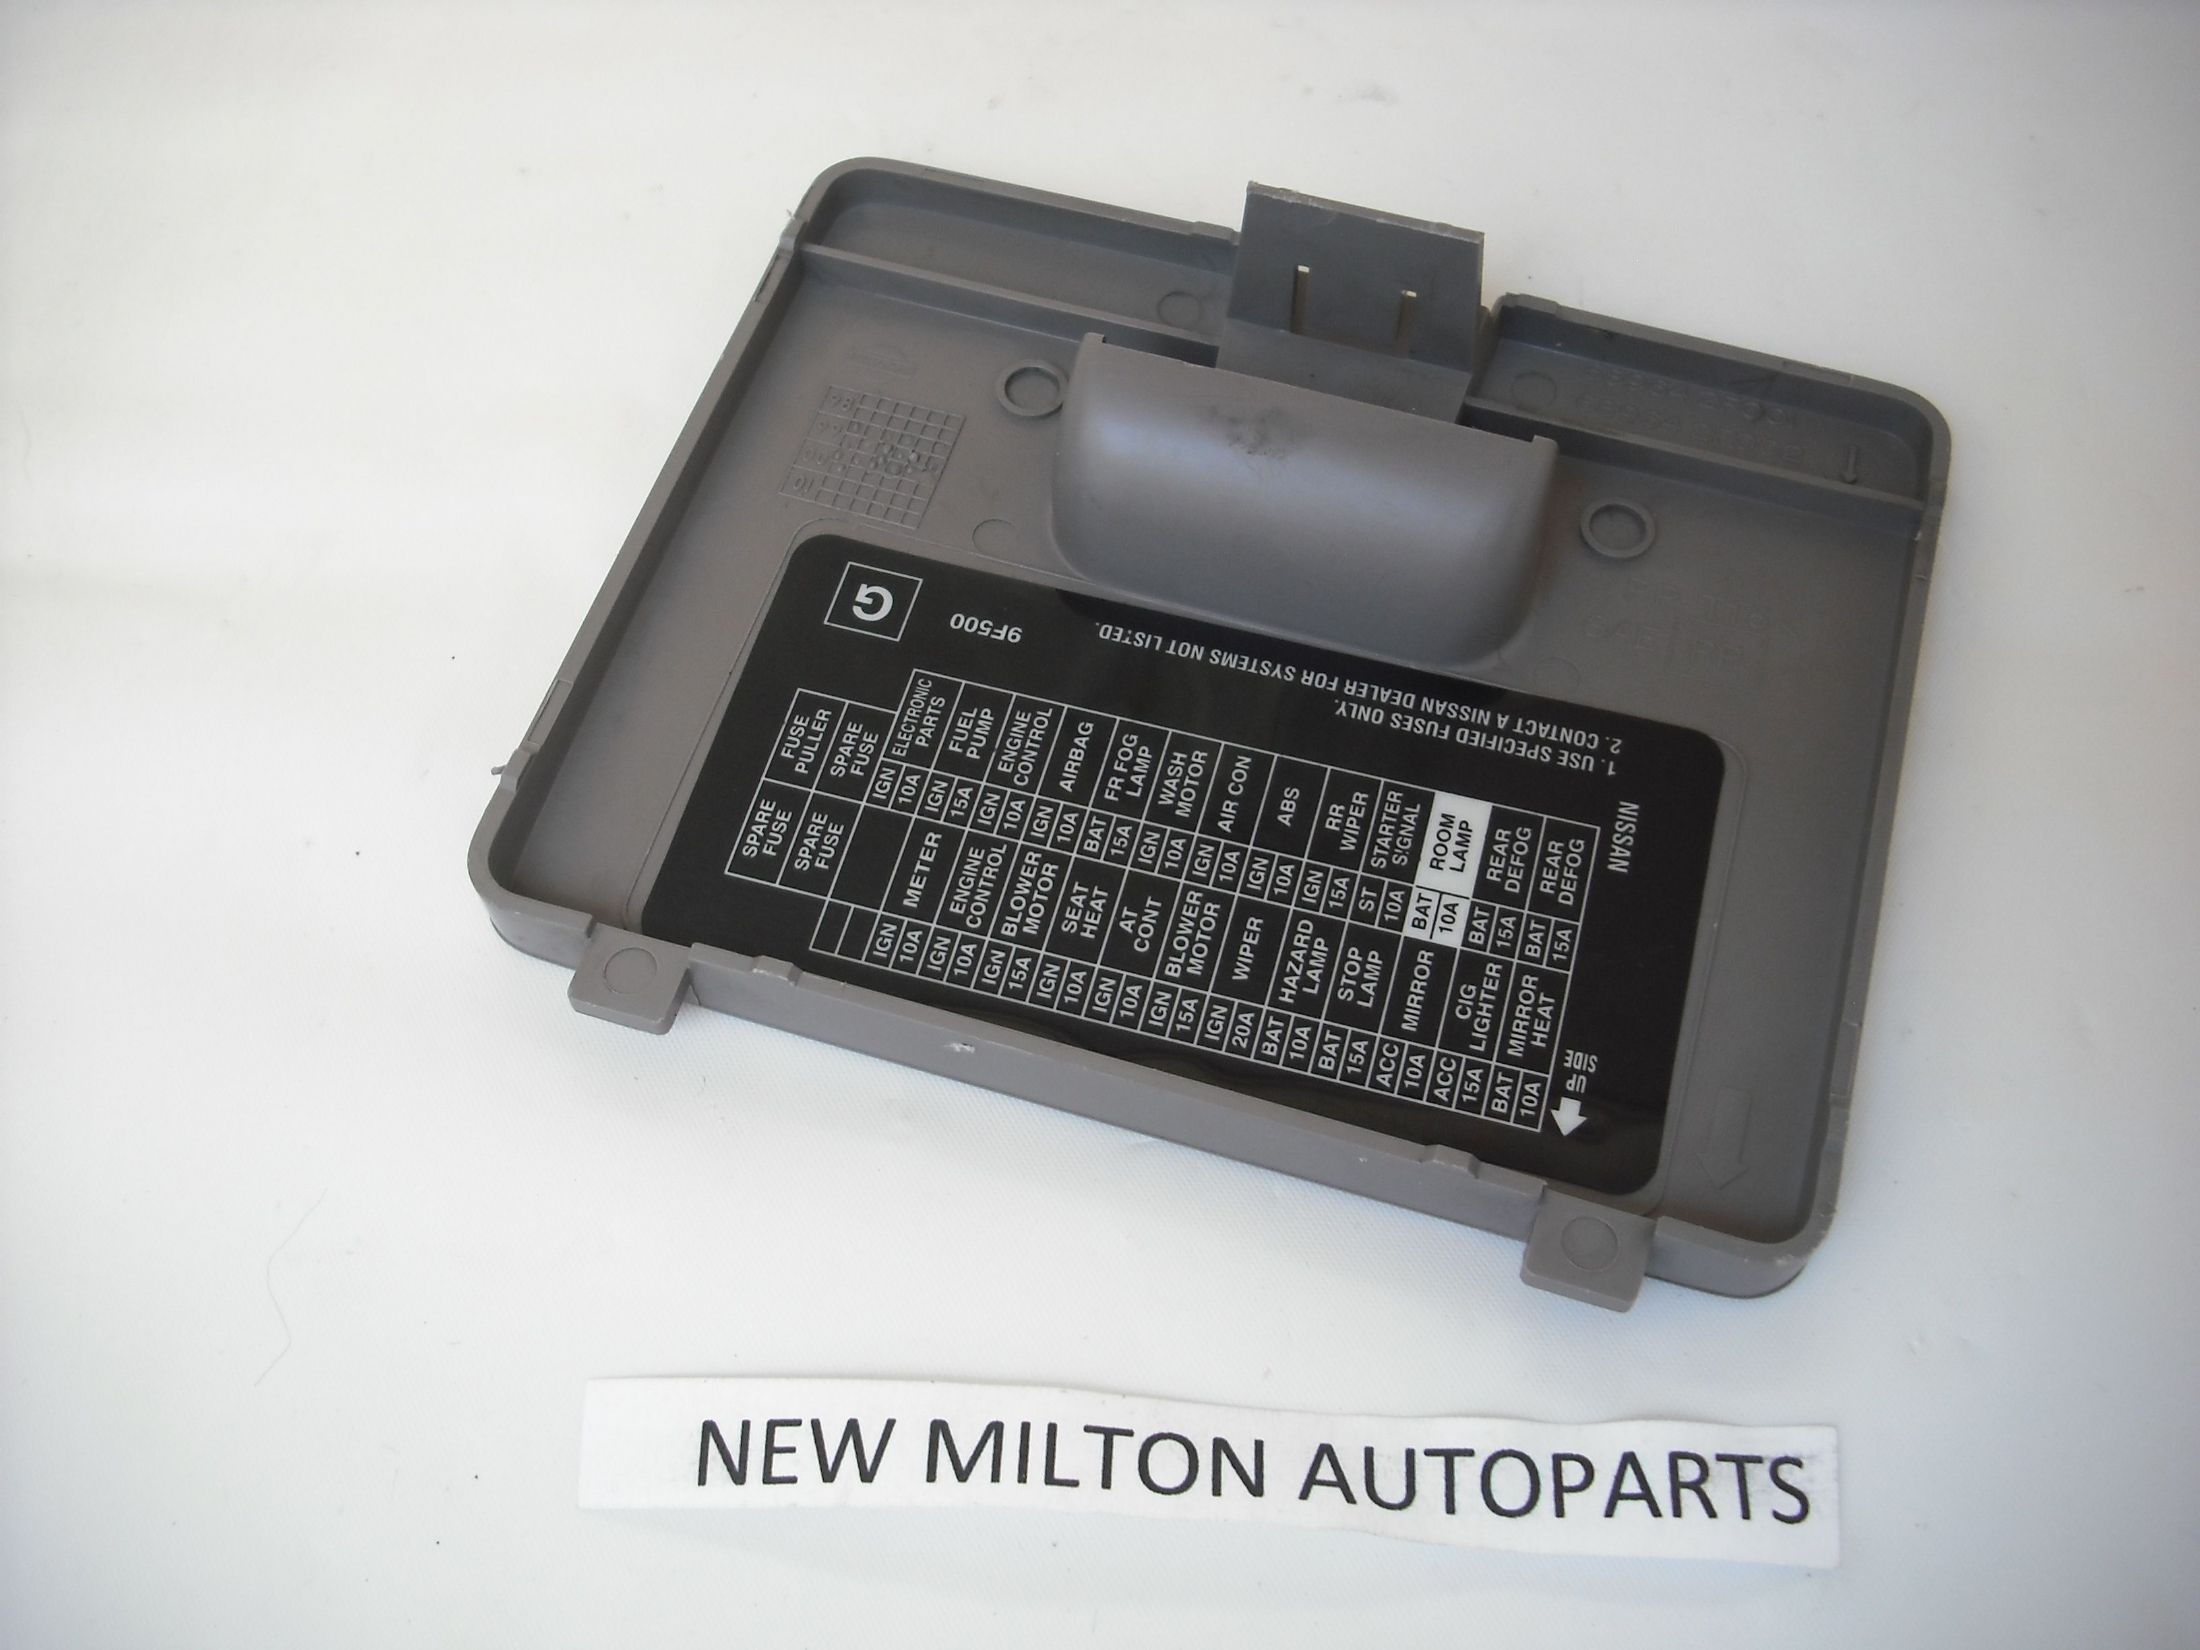 nissan primera p11 1996 2002 interior dash fuse box cover [2] 4243 p primera p11 1996 2002 interior dash fuse box cover fuse box cover at bayanpartner.co